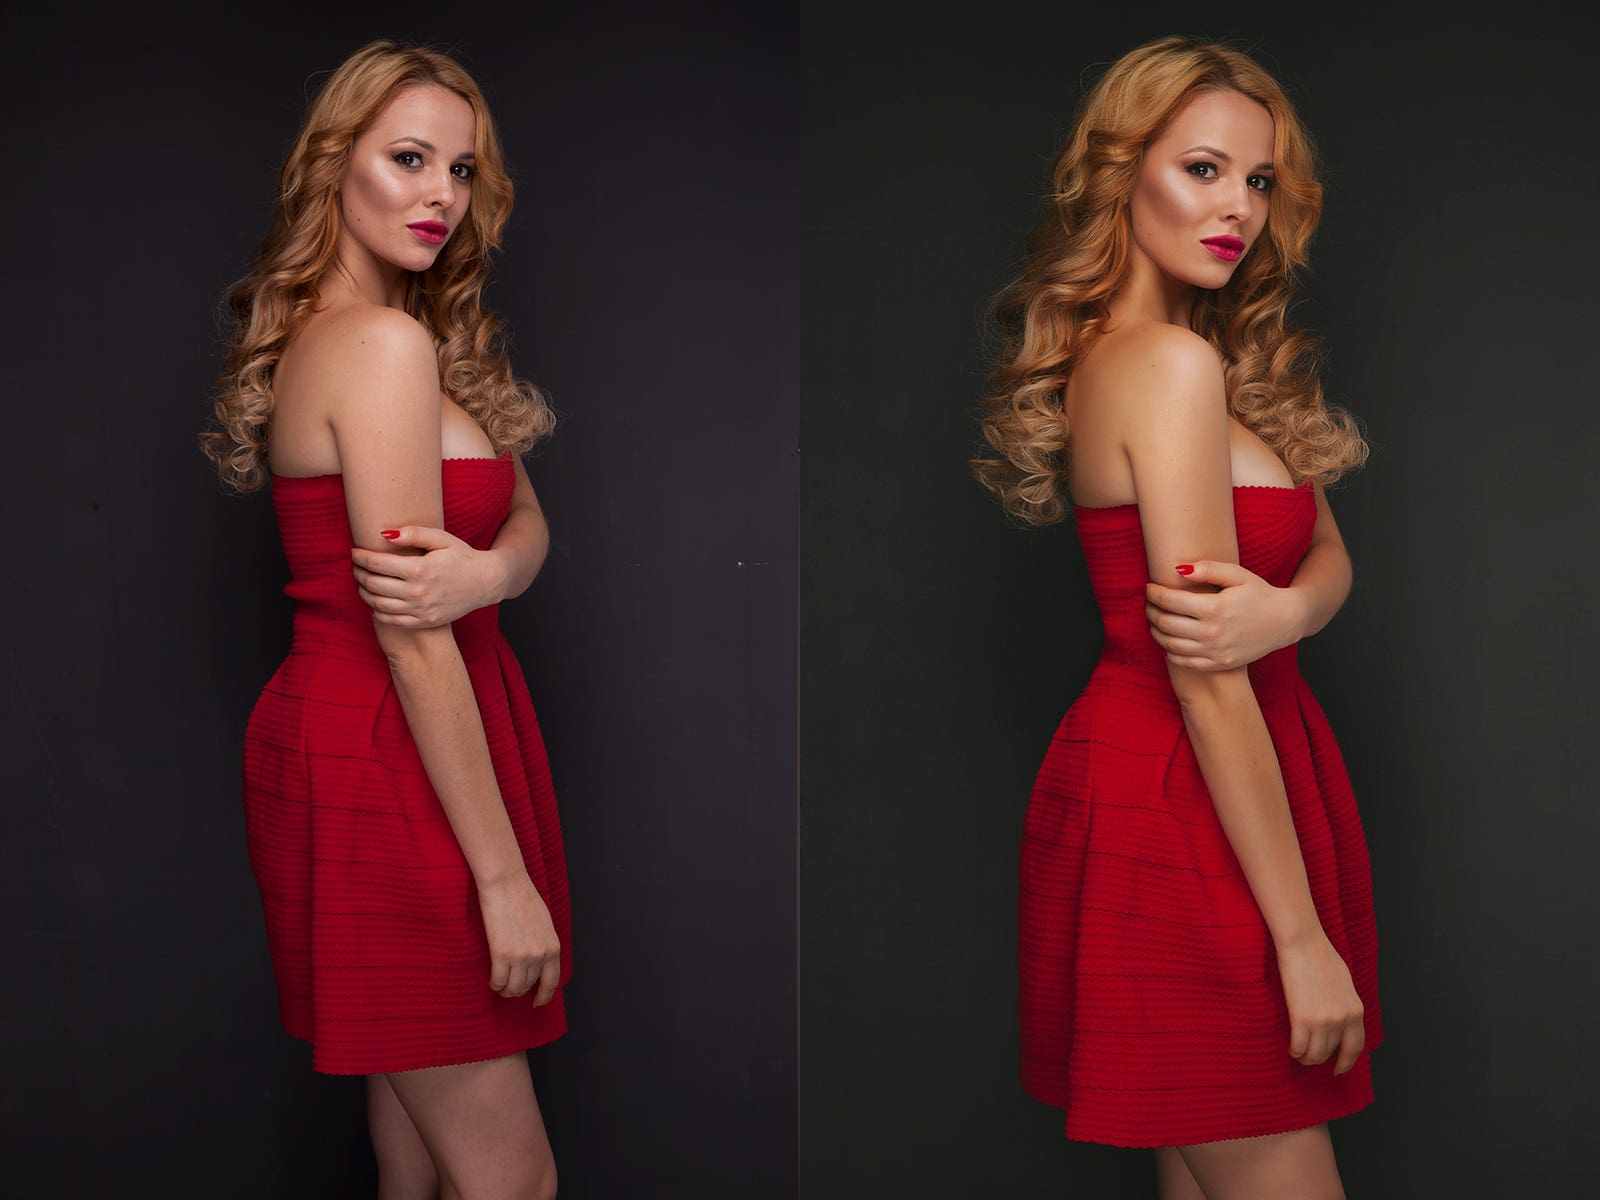 portrait retouch. before and after